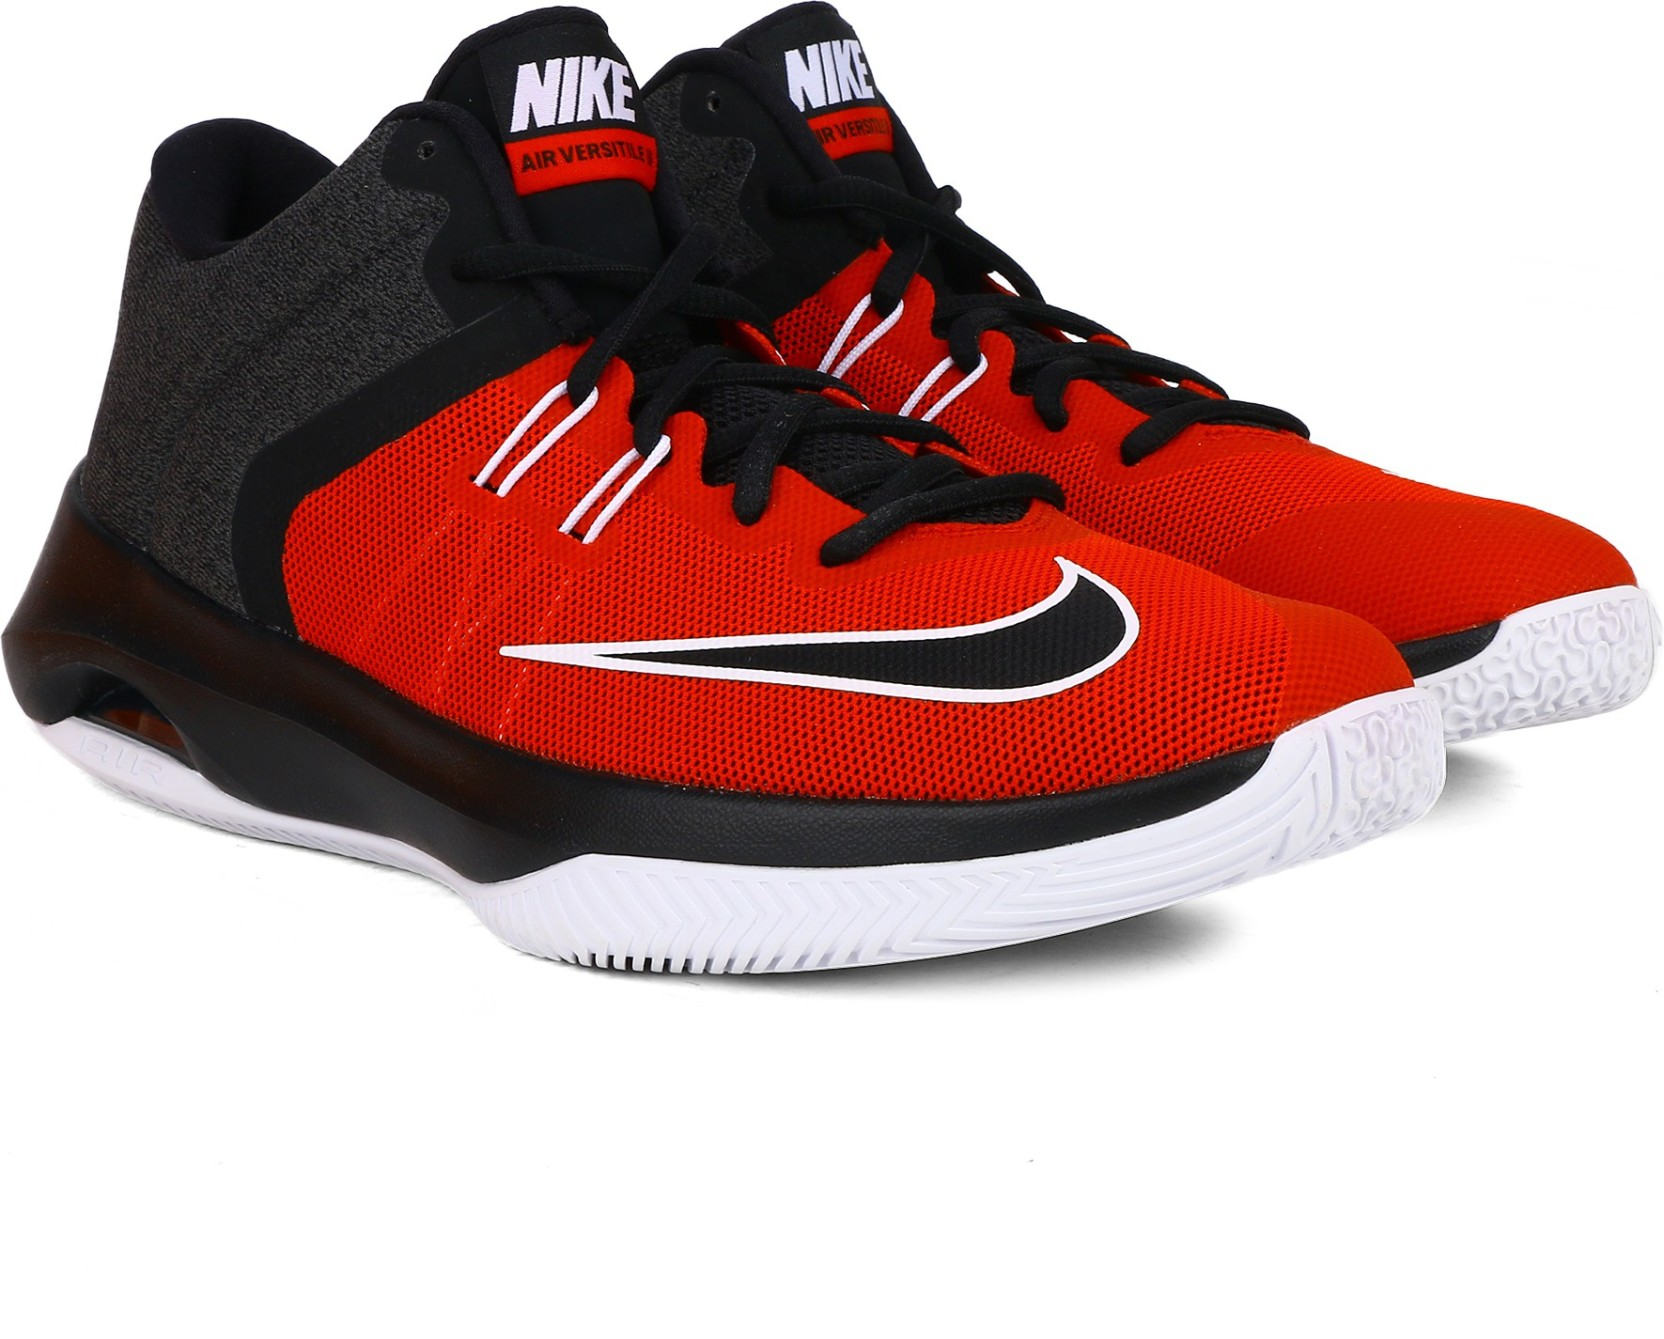 pick up 9fd21 49481 Nike AIR VERSITILE II Basketball Shoes For Men (Red)